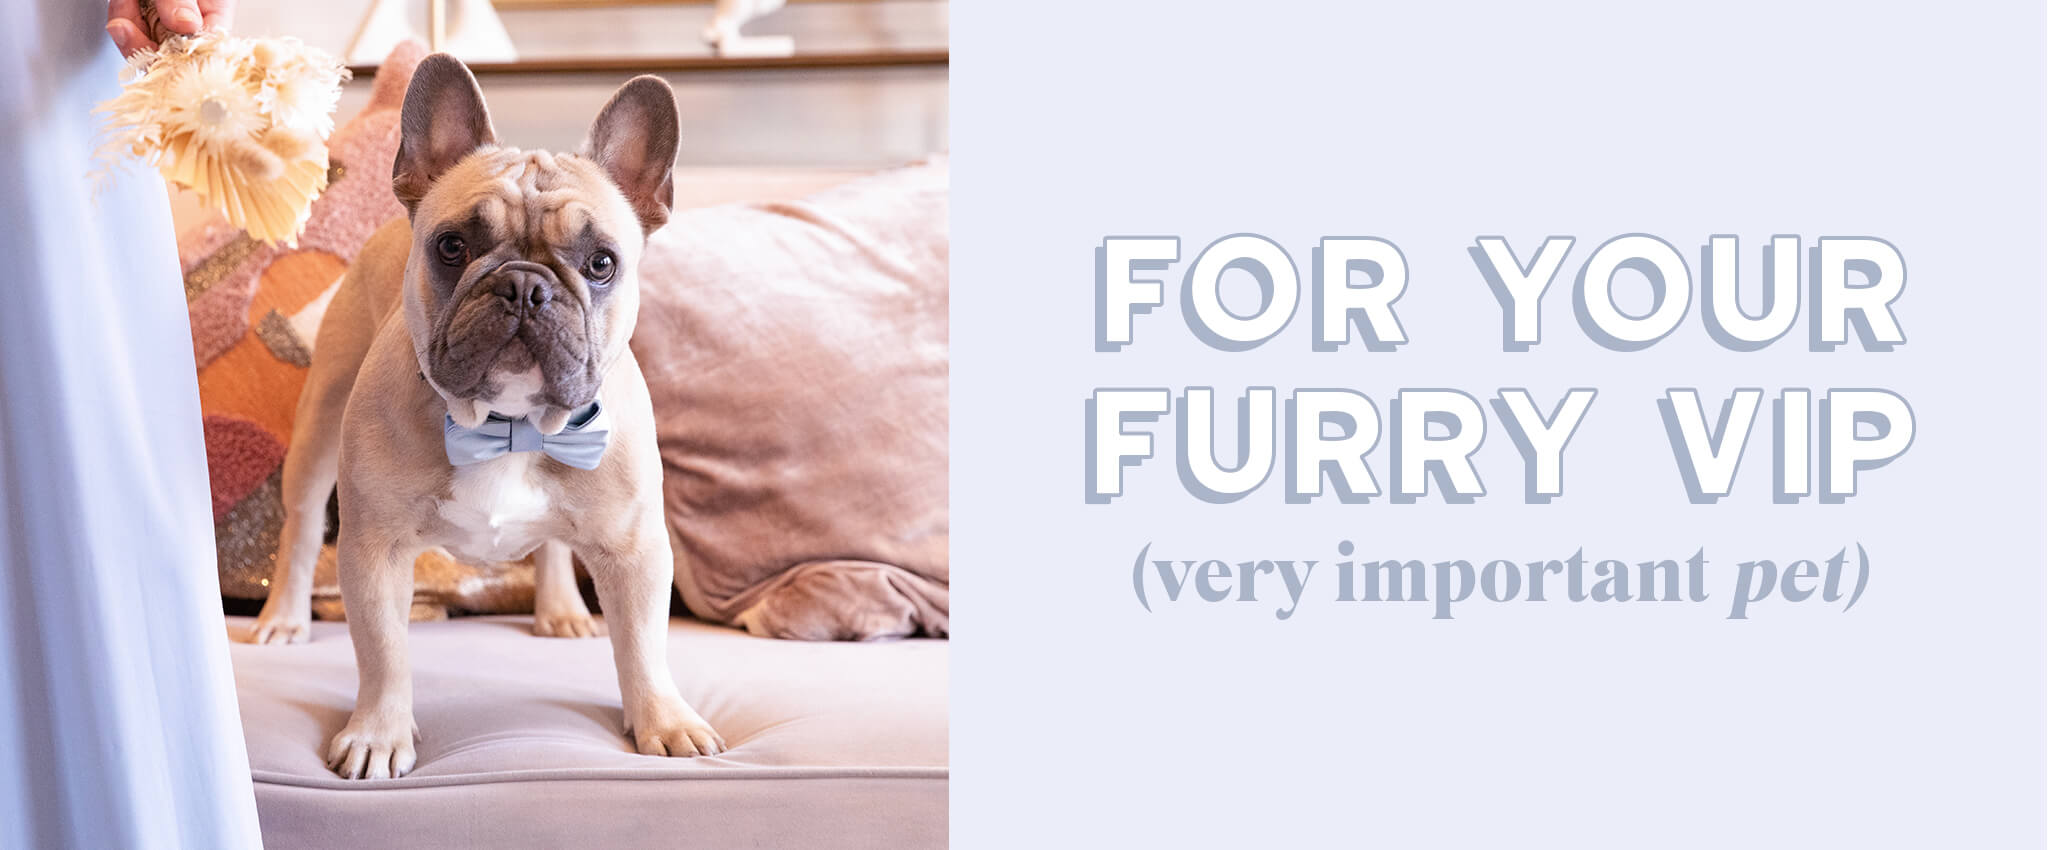 For Your Furry VIP (most important pet)